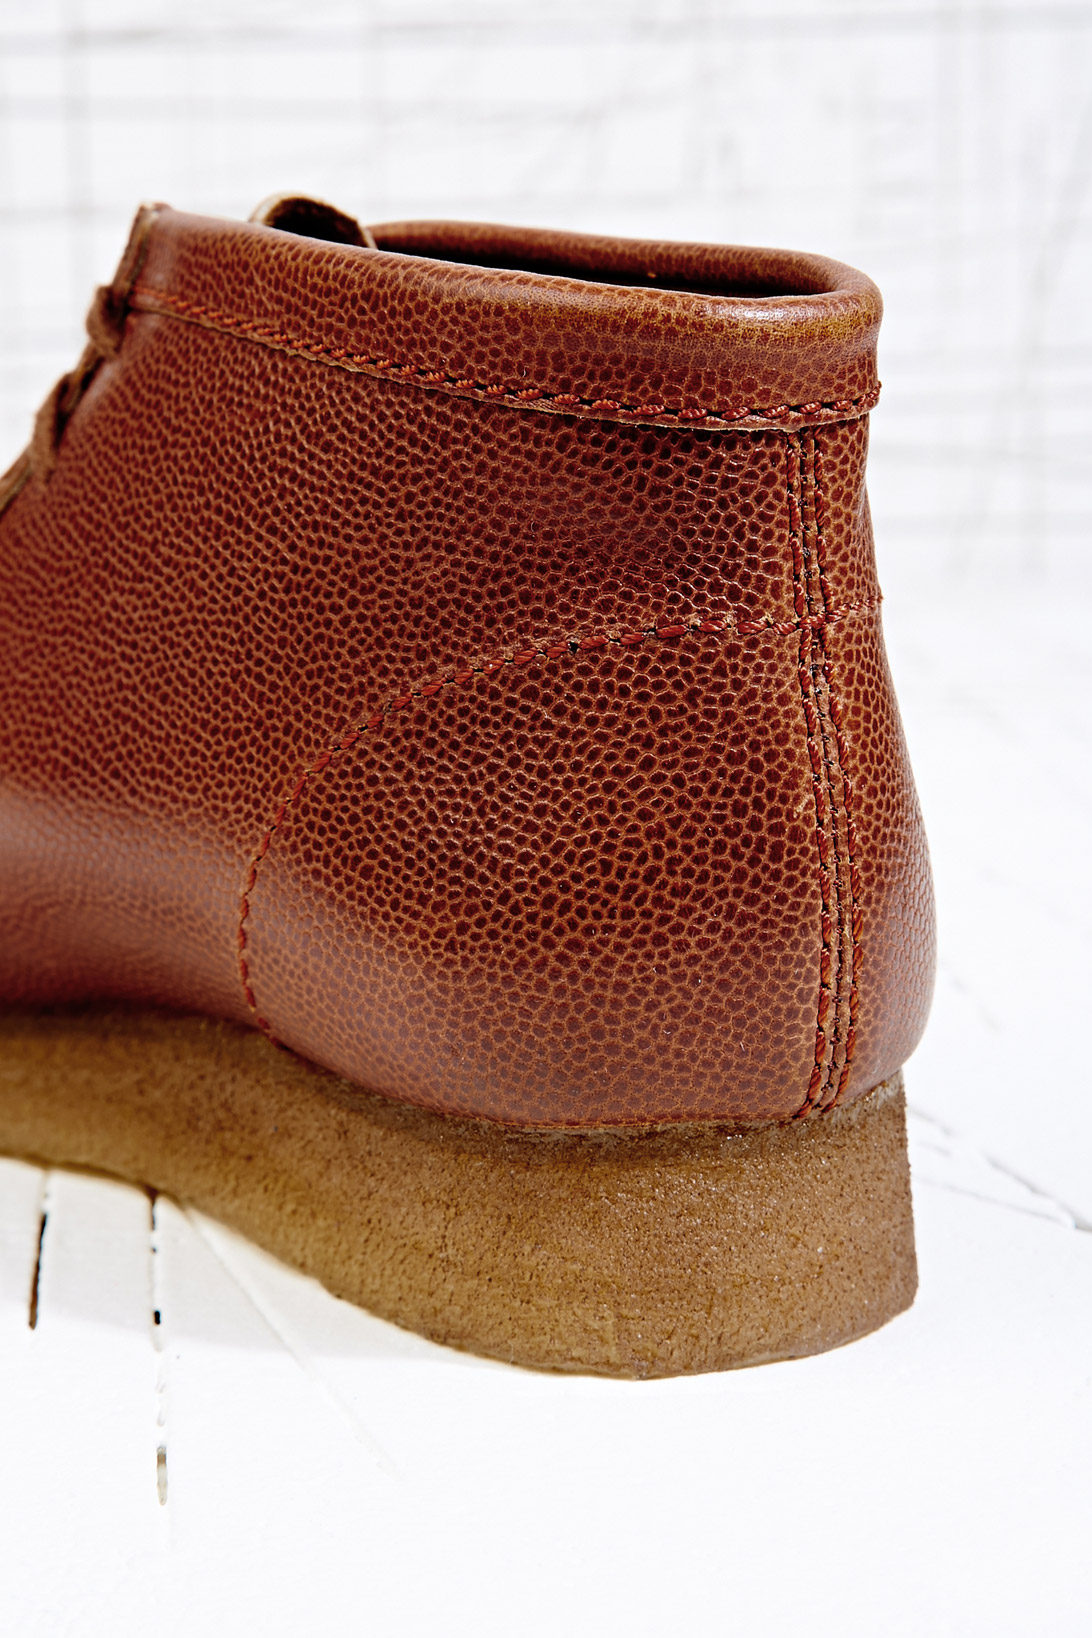 Clarks Wallabee Horween Leather Shoes in Tan (Brown) for Men